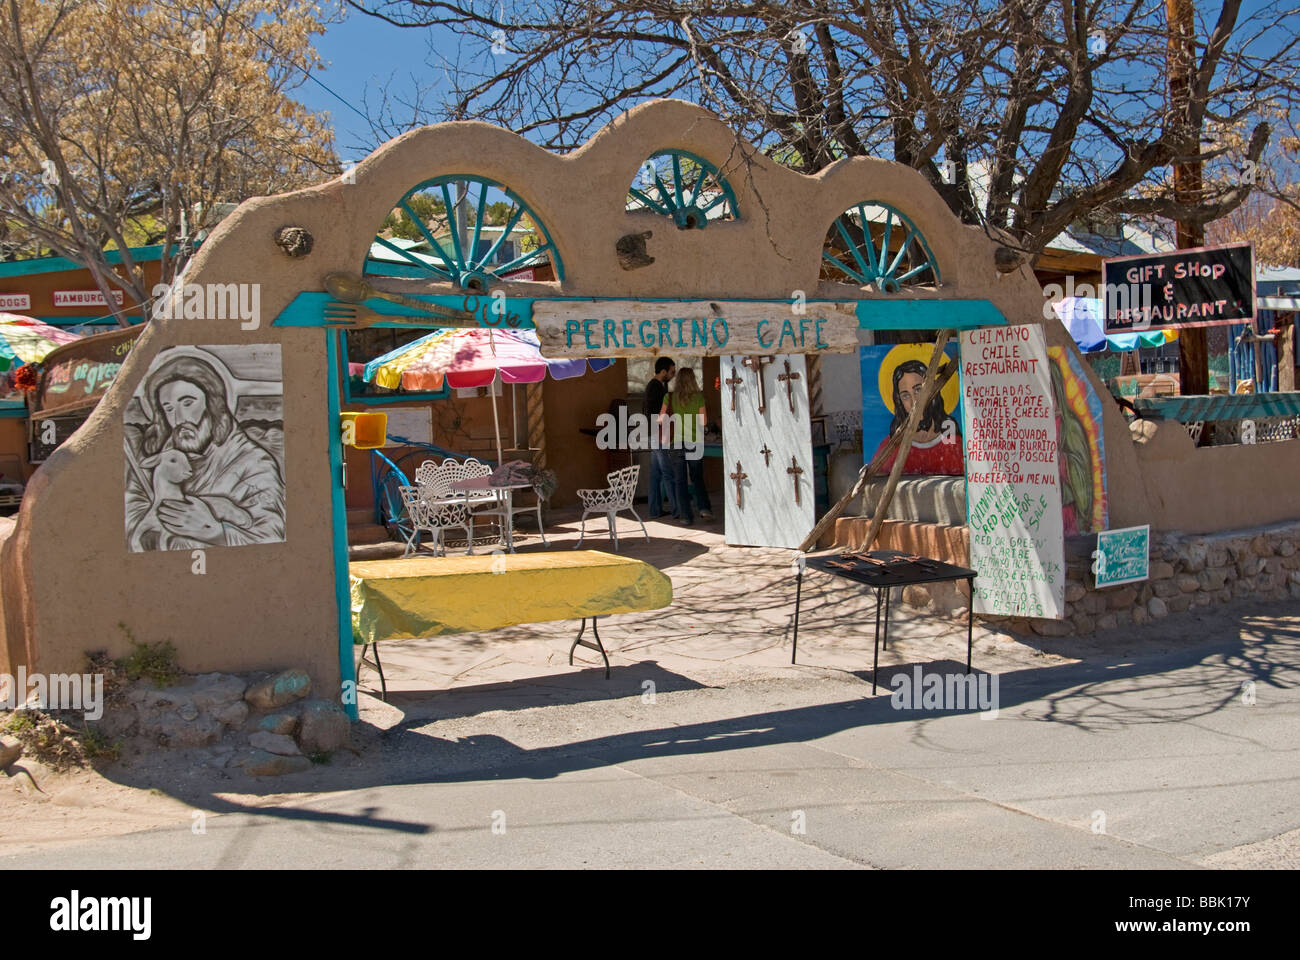 USA New Mexico Chimayo Peregrino Cafe gift shop and Restaurant ...